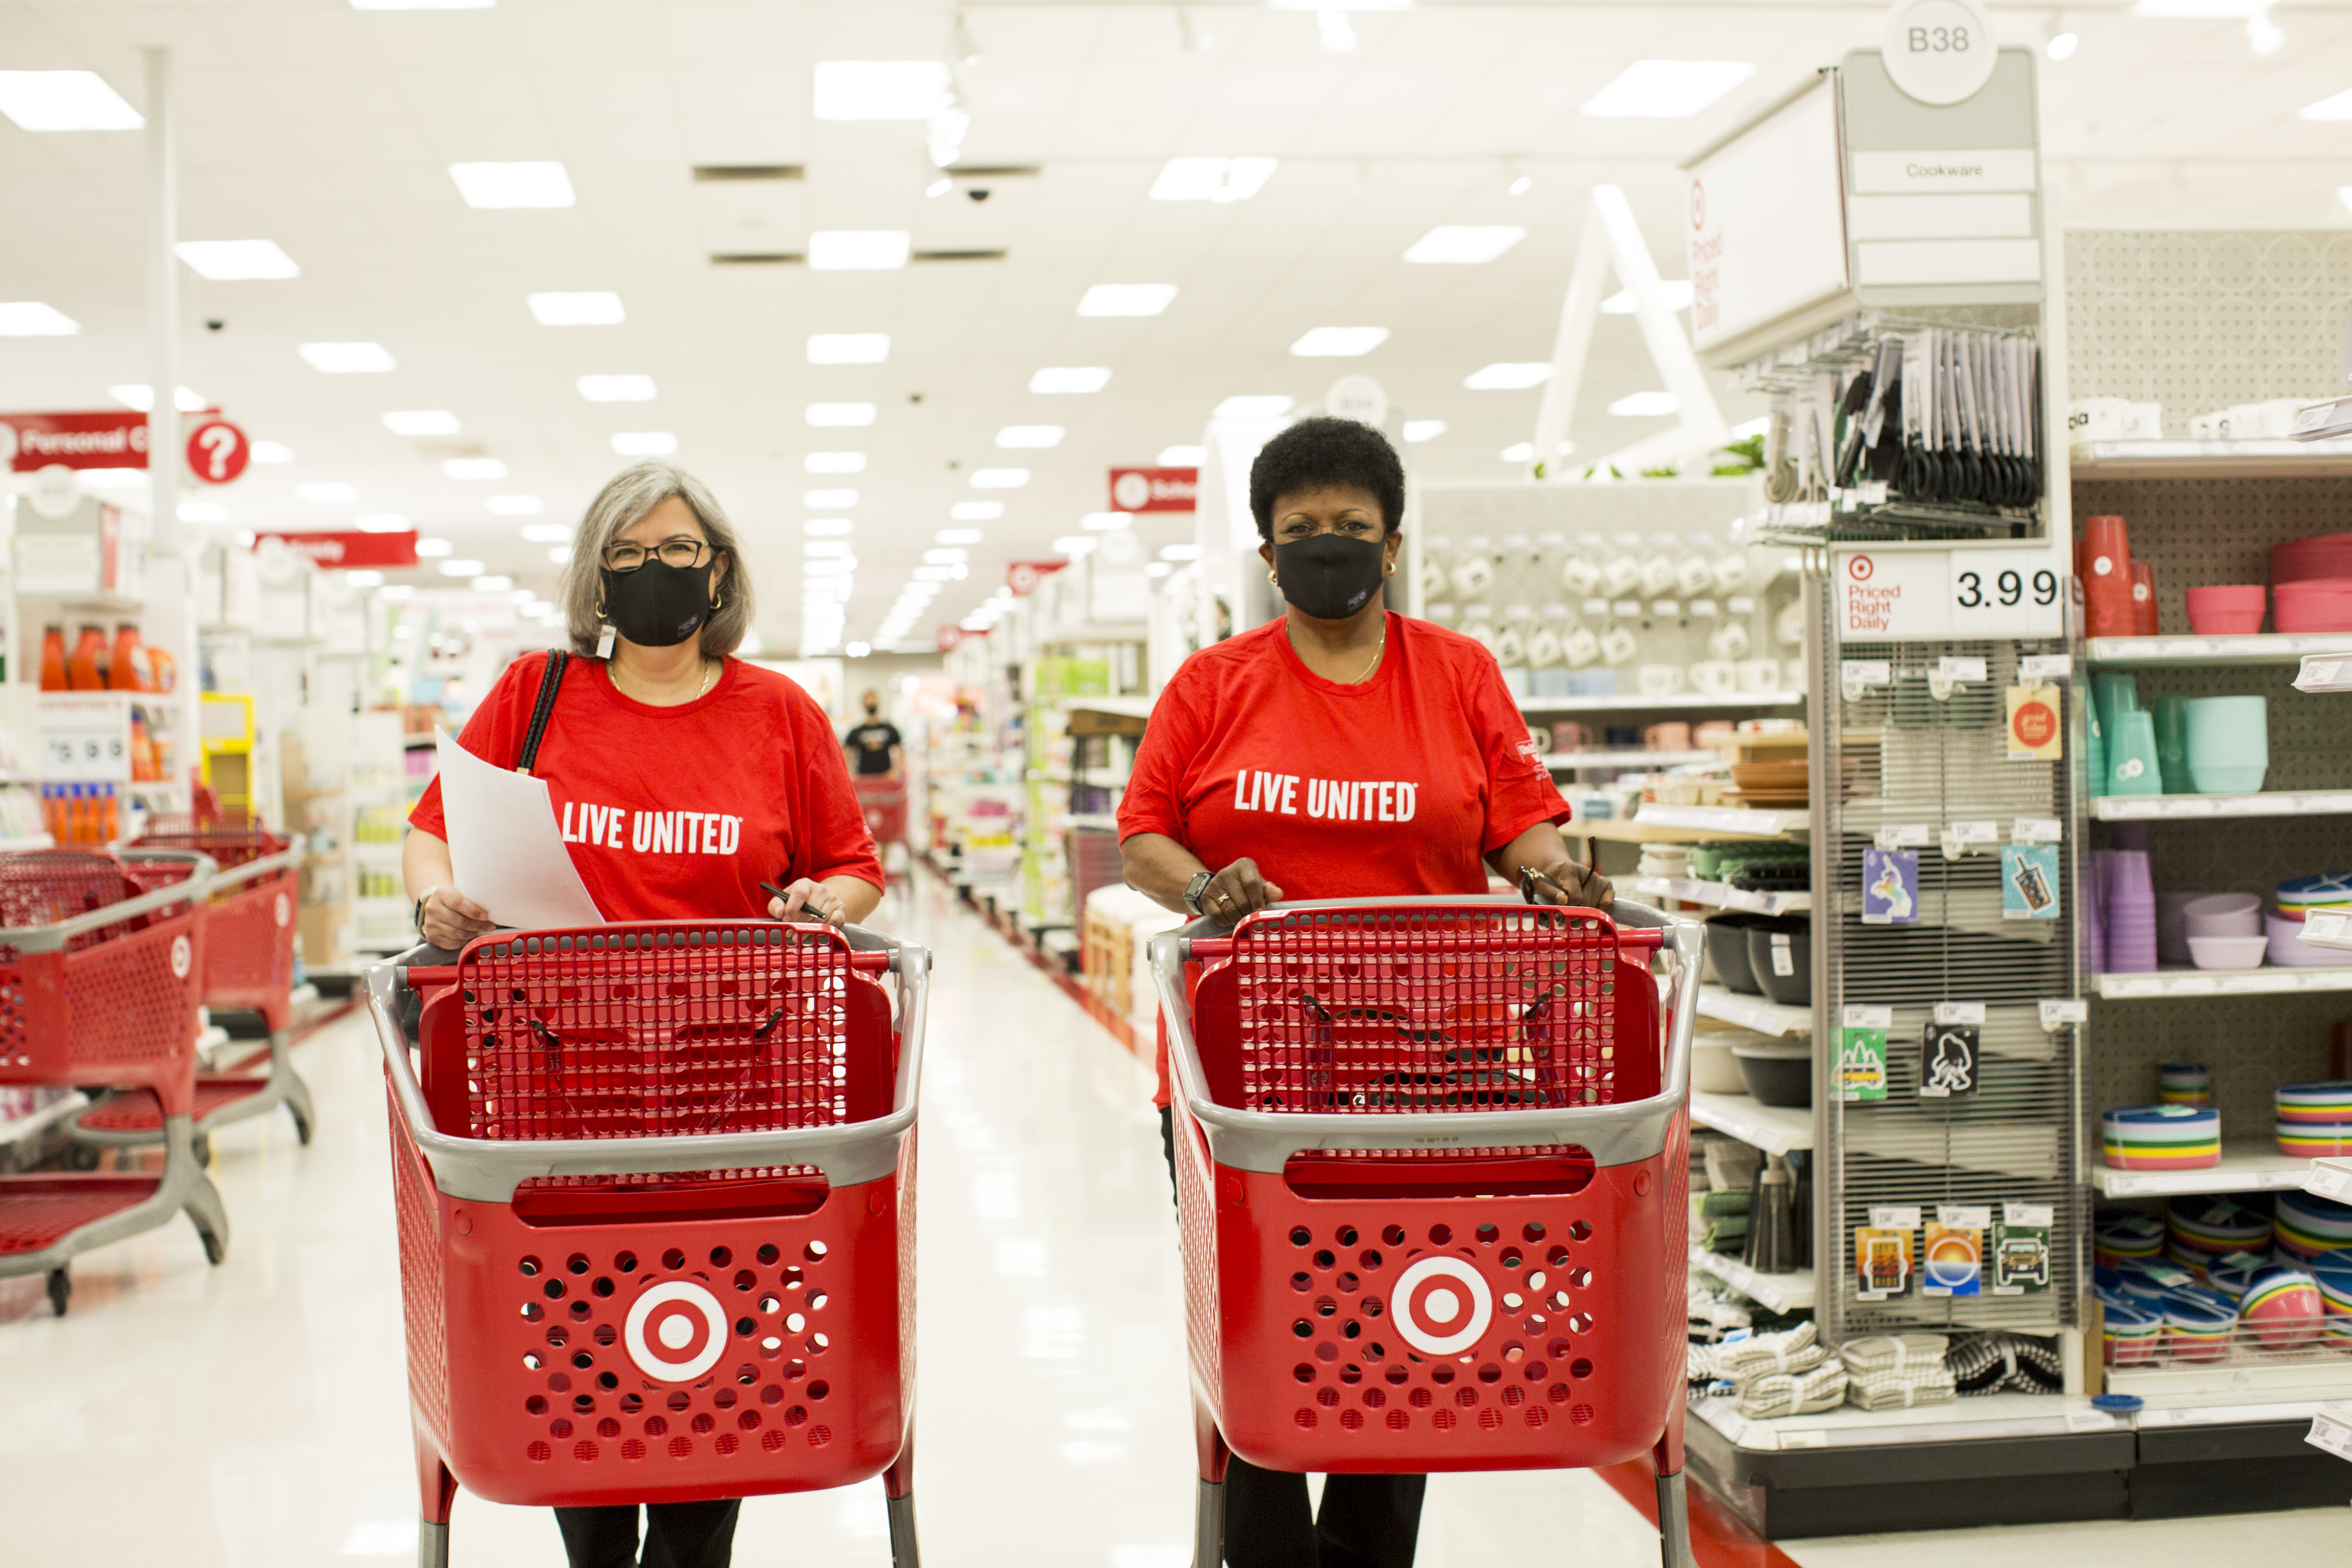 Two Leaders United member in Live United shirt shop at Target for items needed for The Way Home project